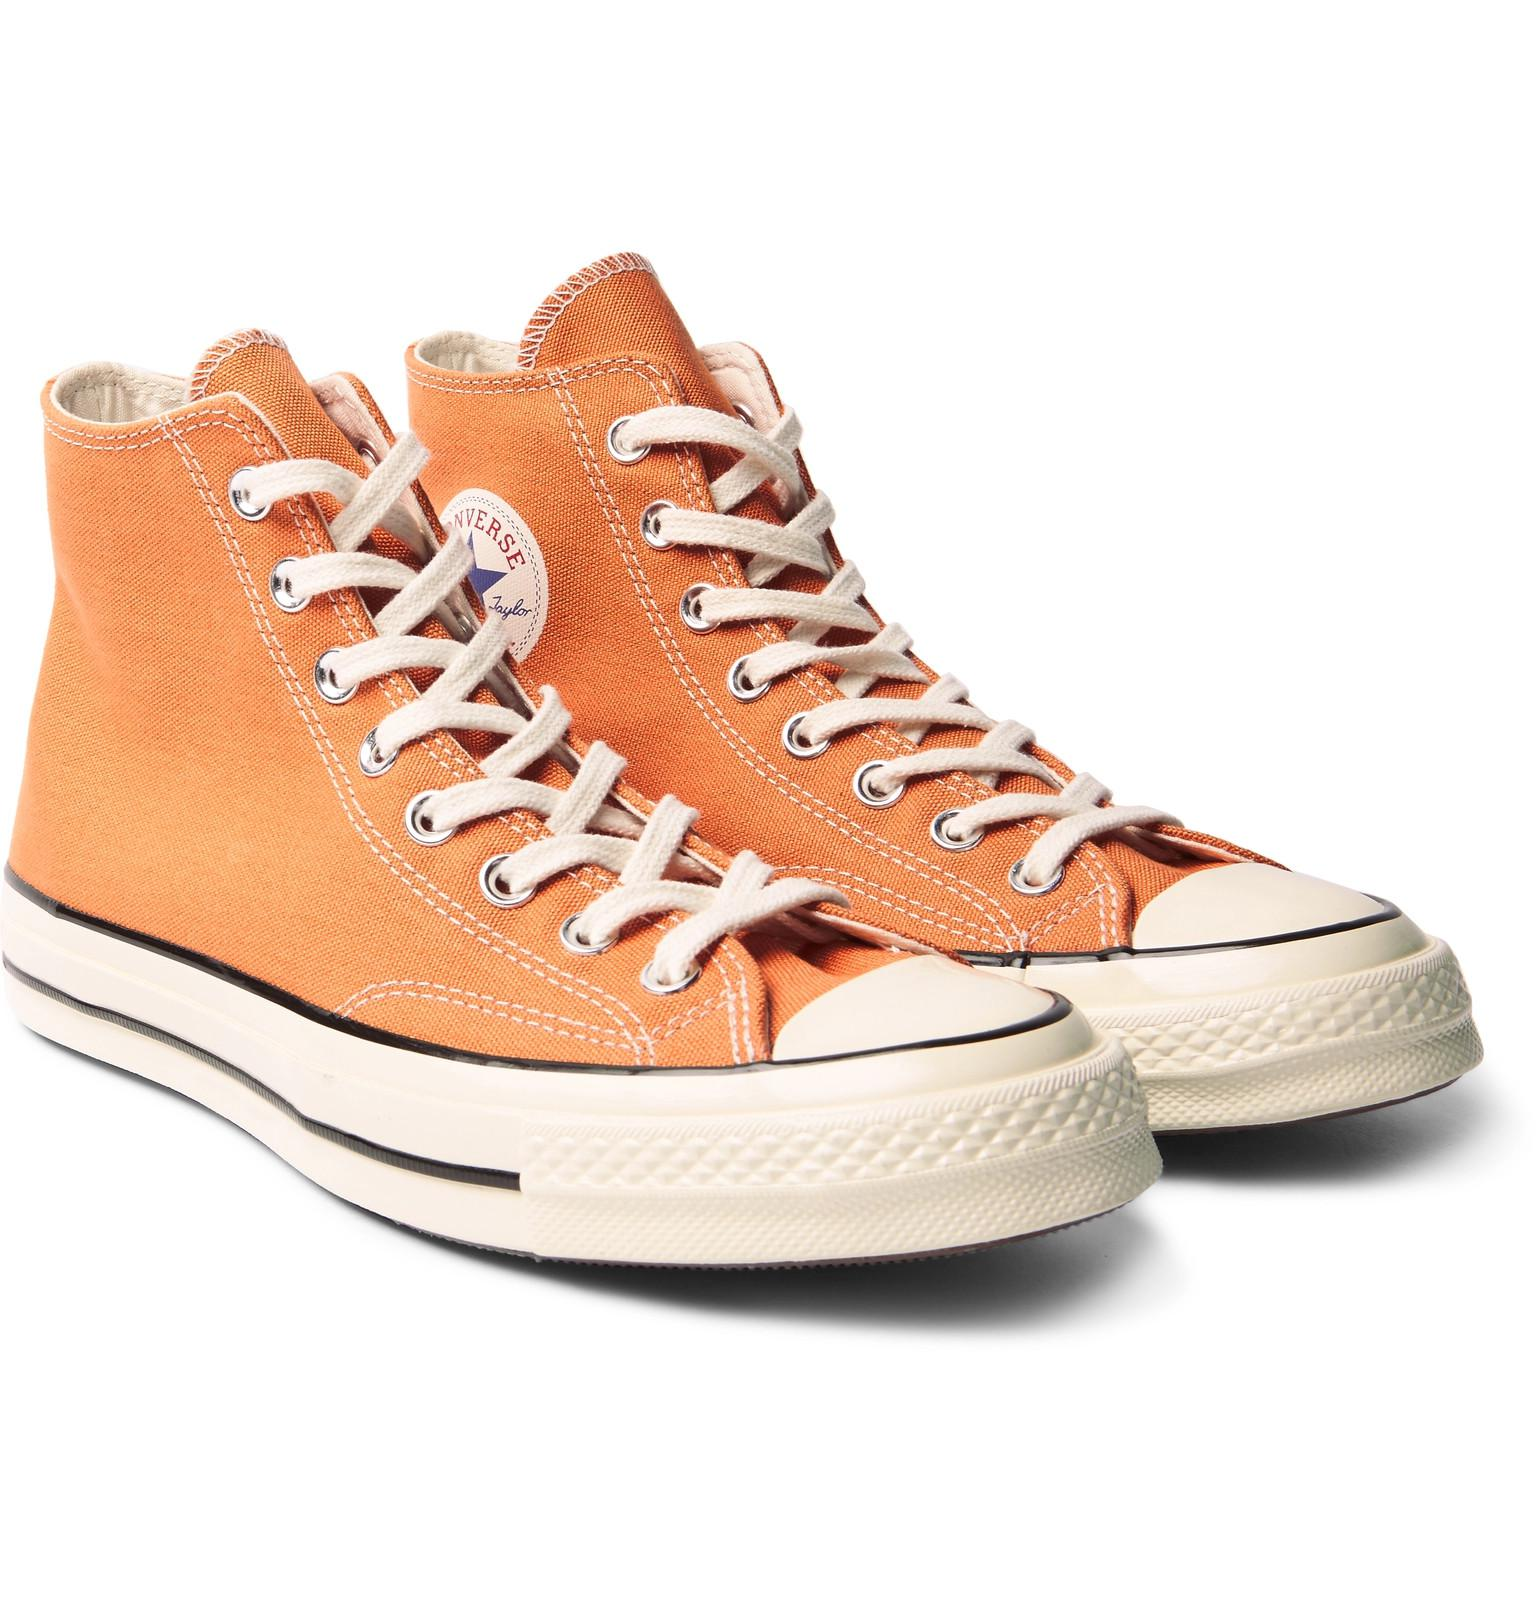 17727c1d3ec15f Lyst - Converse 1970s Chuck Taylor All Stars Canvas High-top ...